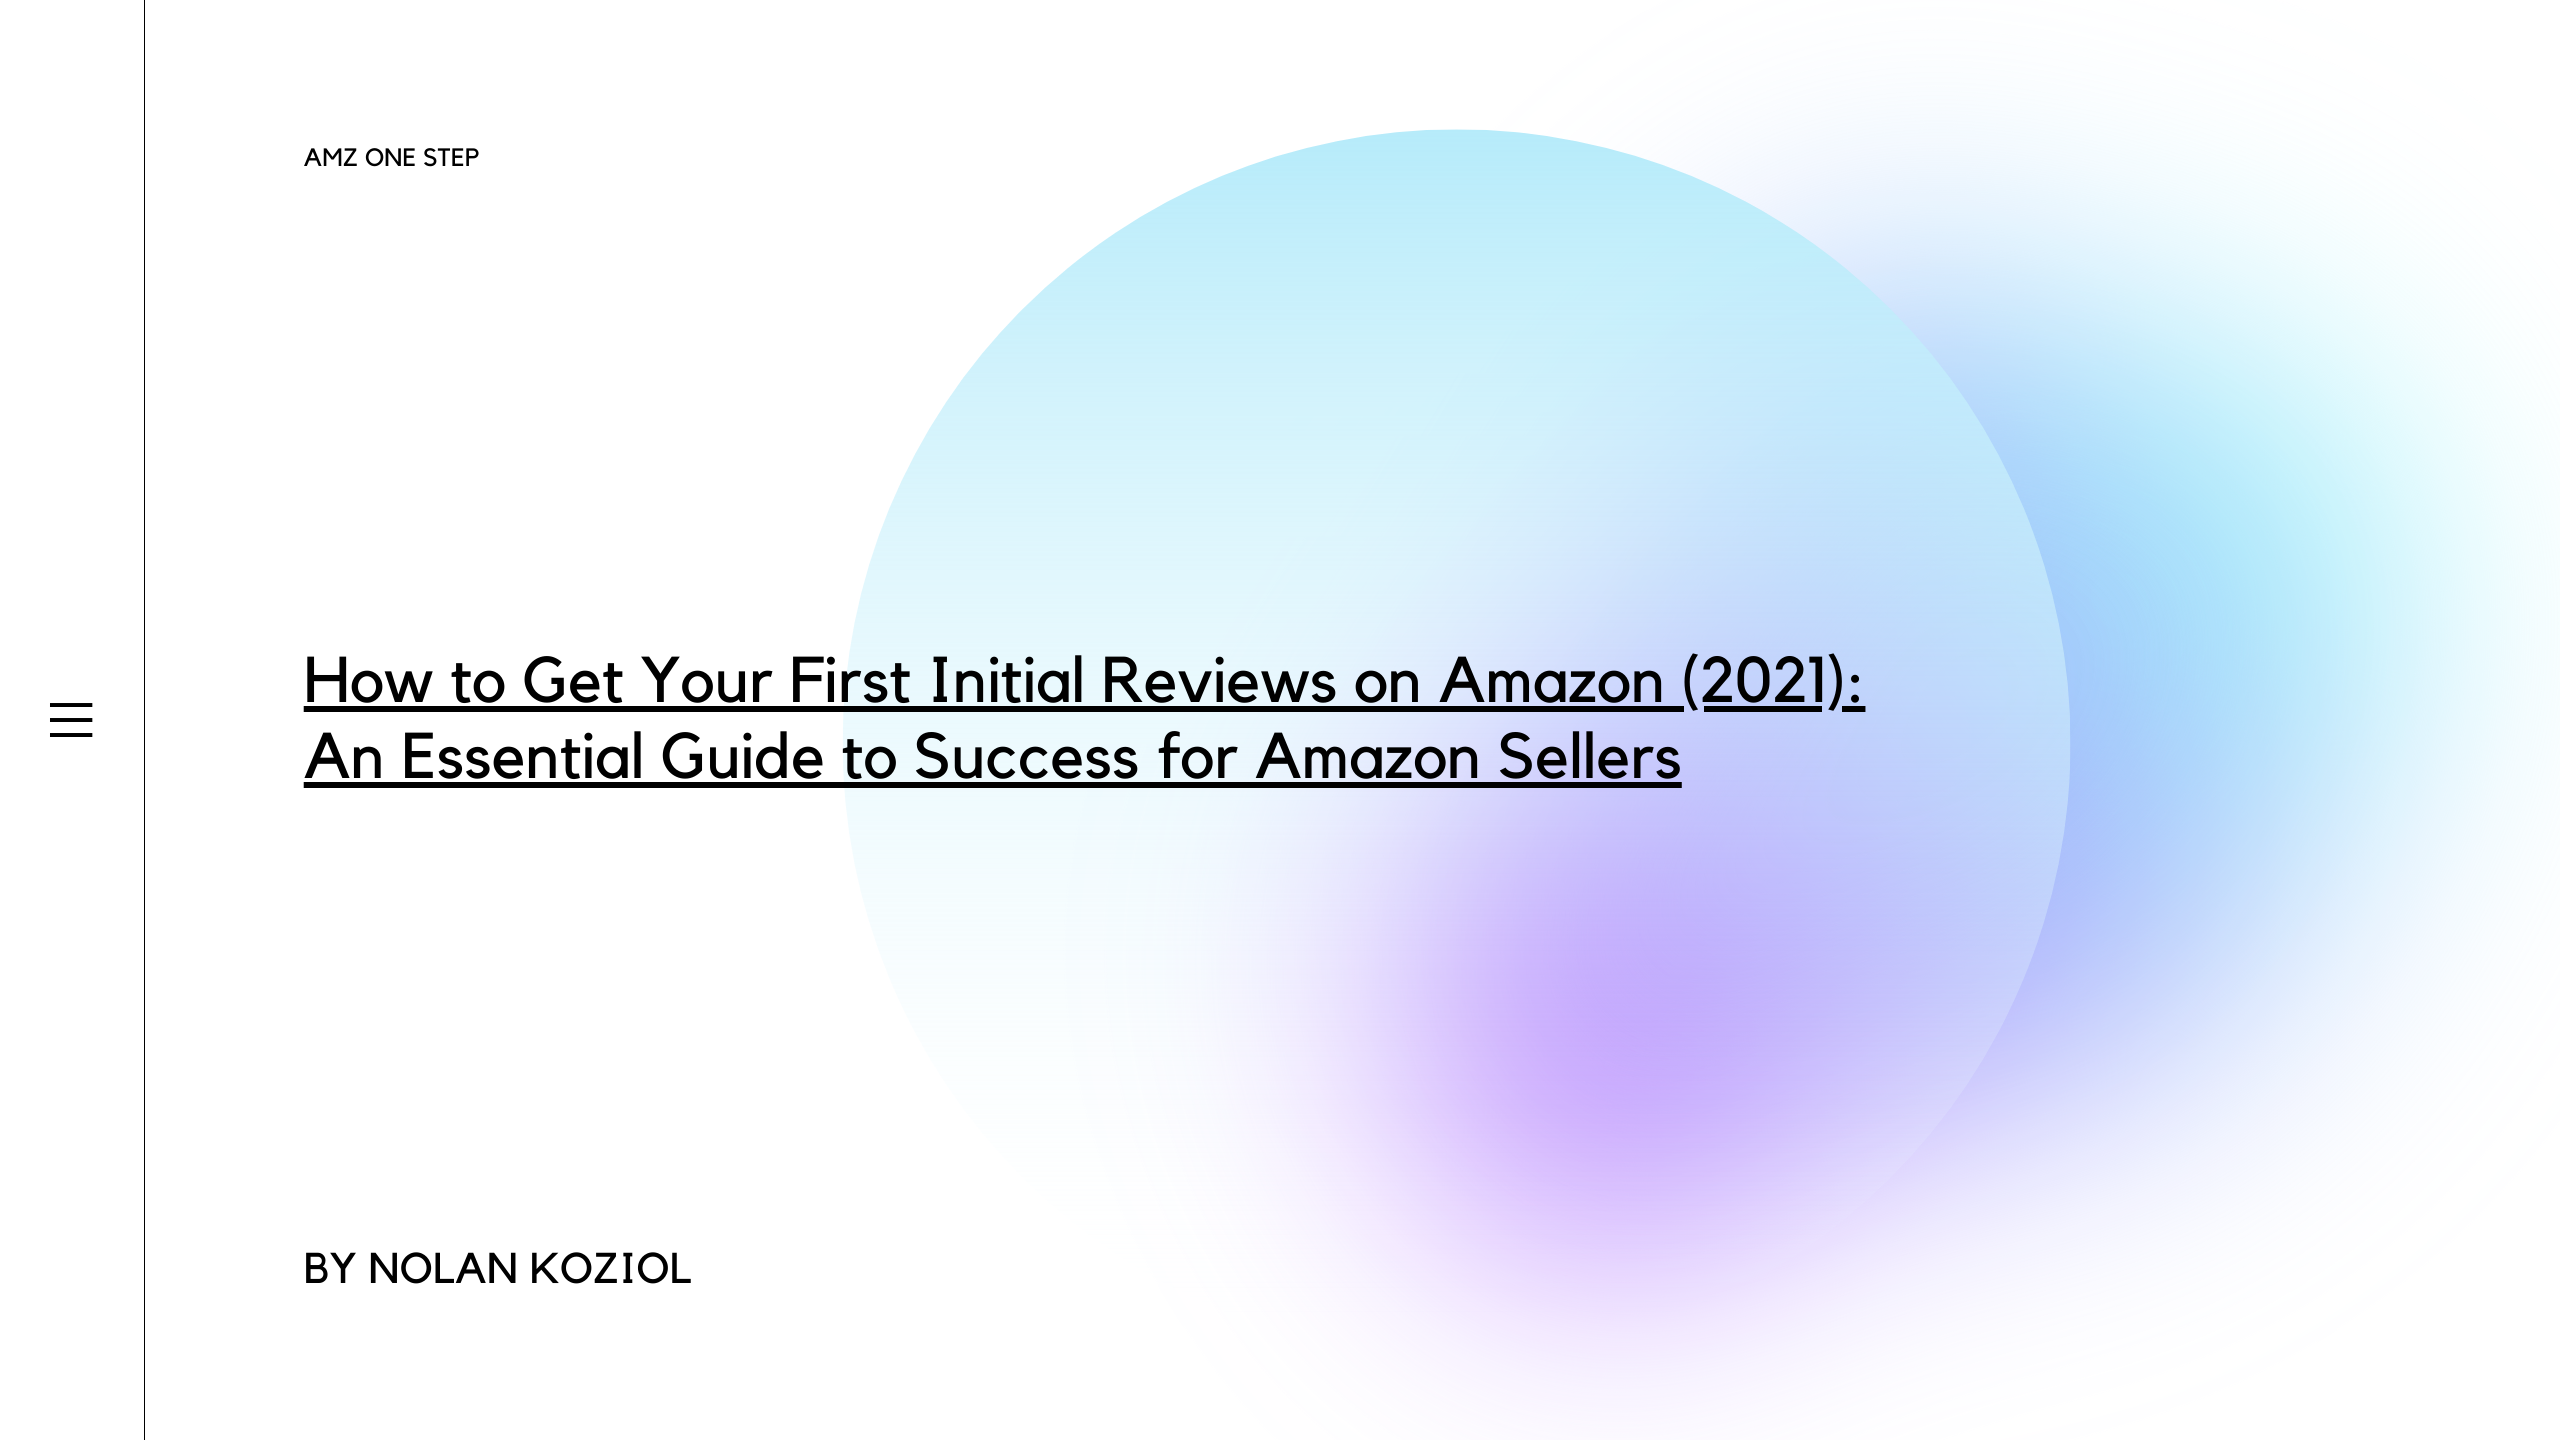 How to Get Your First Initial Reviews on Amazon (2021): An Essential Guide to Success for Amazon Sellers